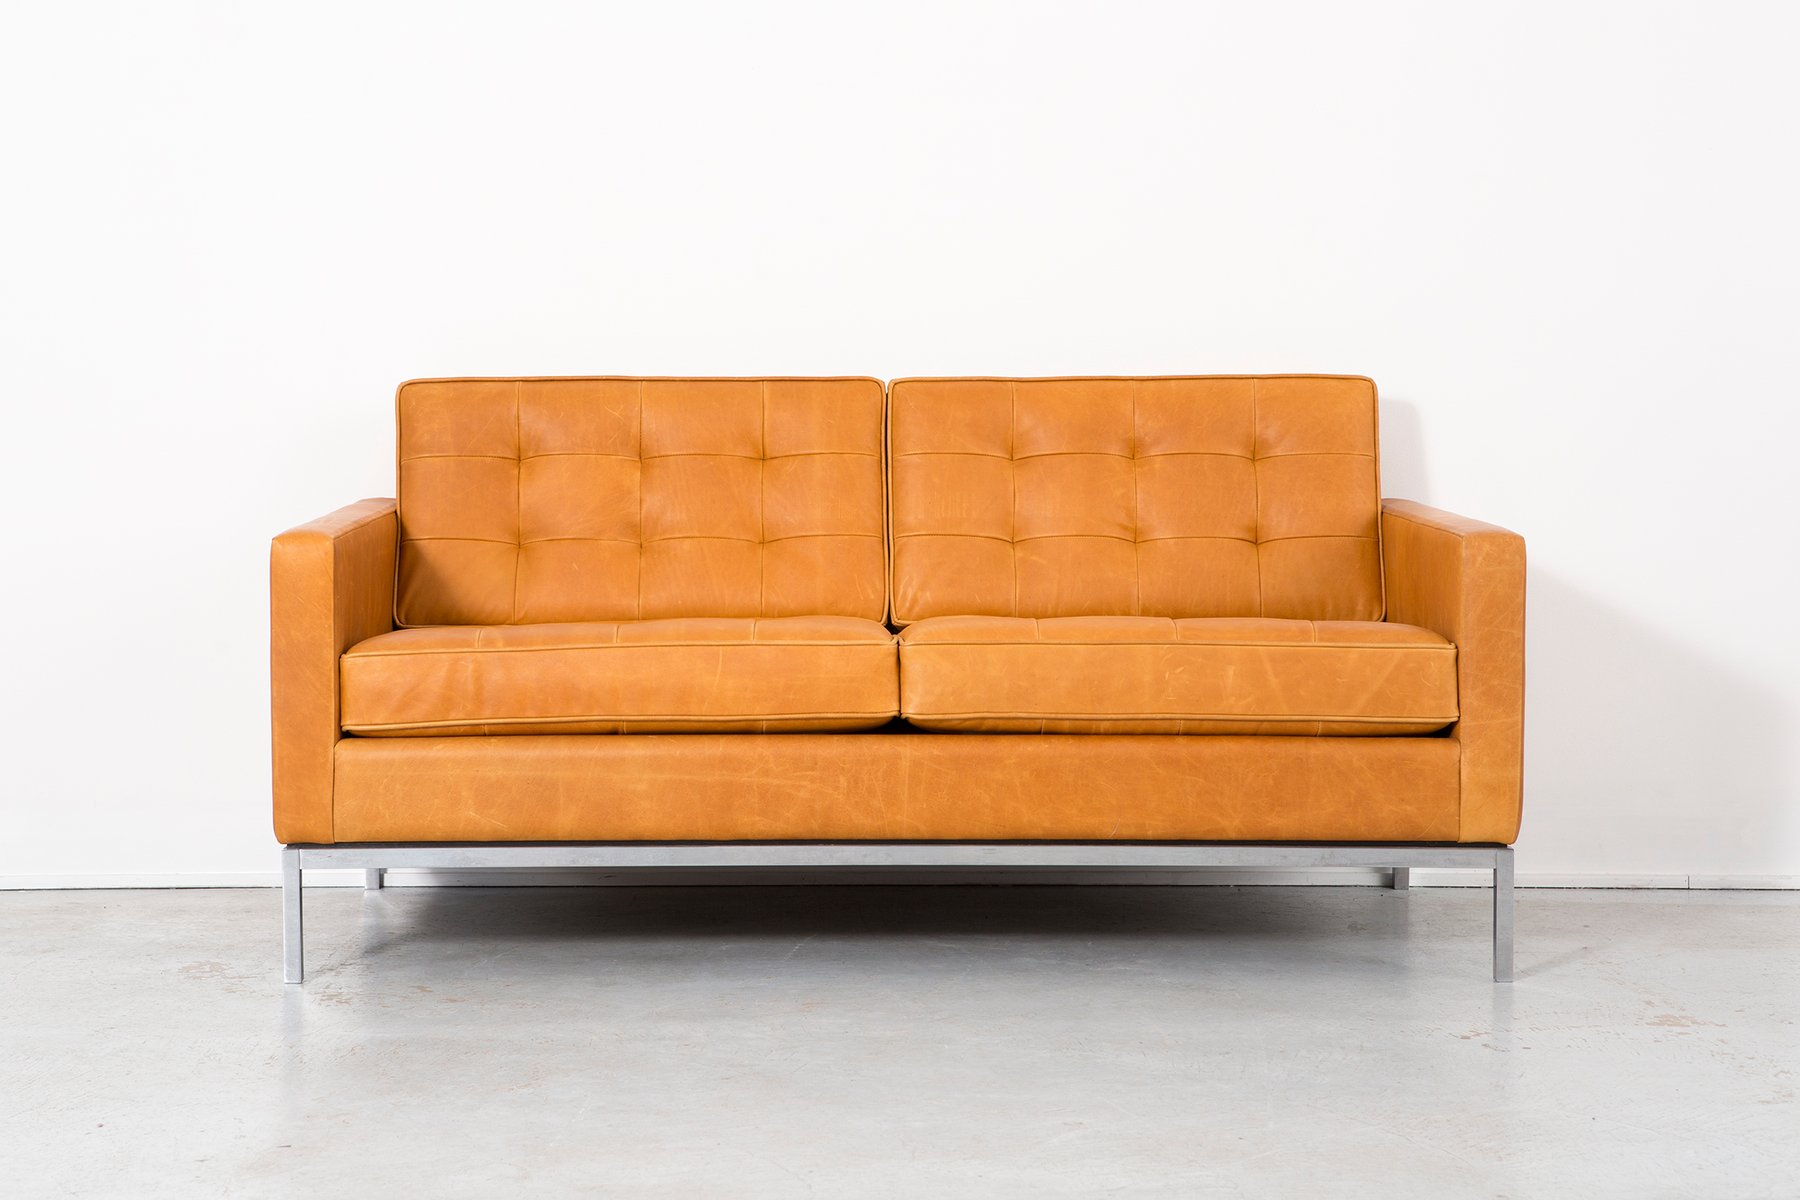 leather sofa by florence knoll bassett for knoll 1970s for sale at pamono. Black Bedroom Furniture Sets. Home Design Ideas